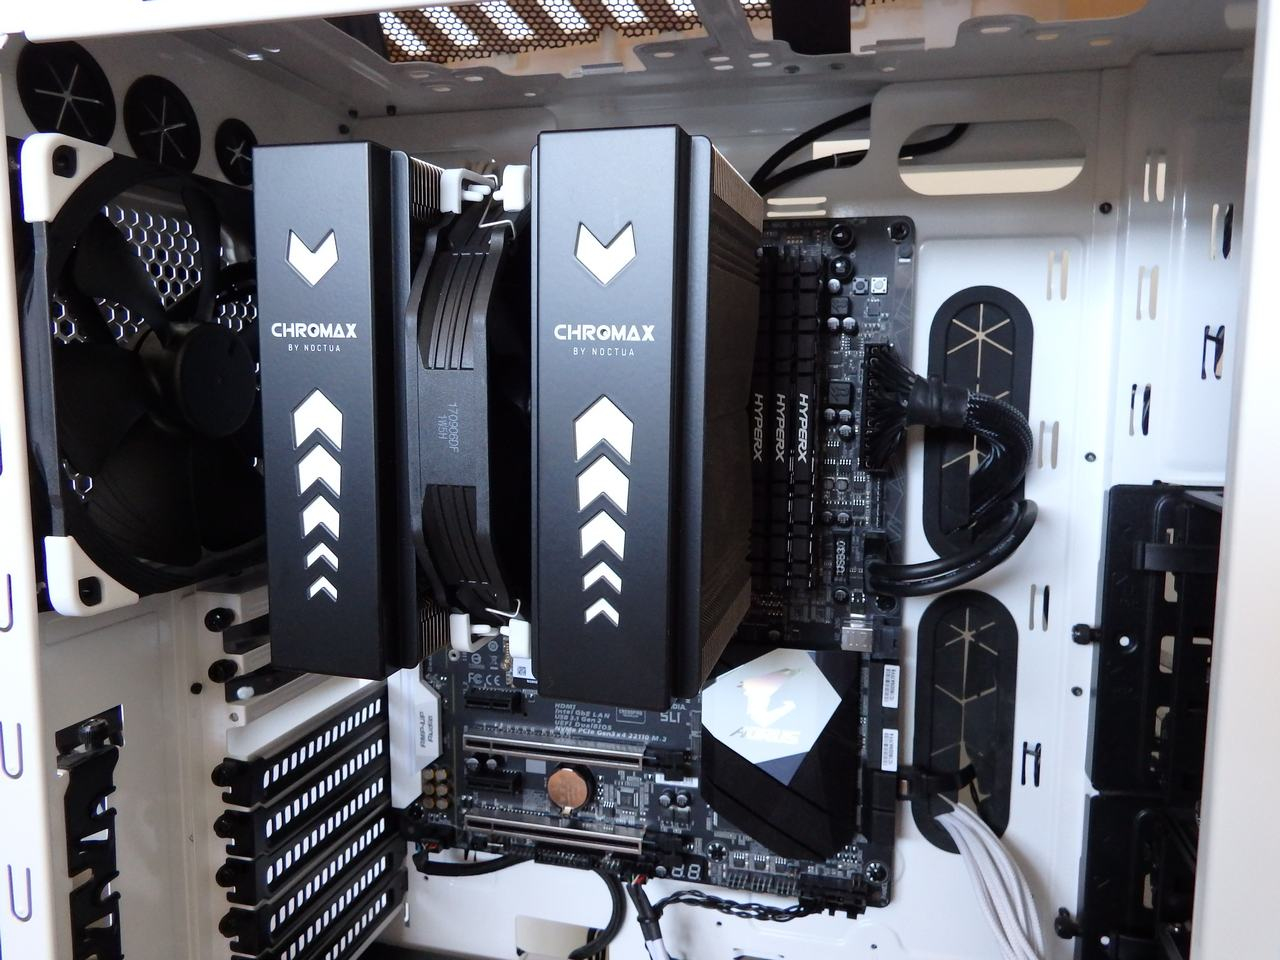 hardware_cooling_noctua_chromax_140mm21